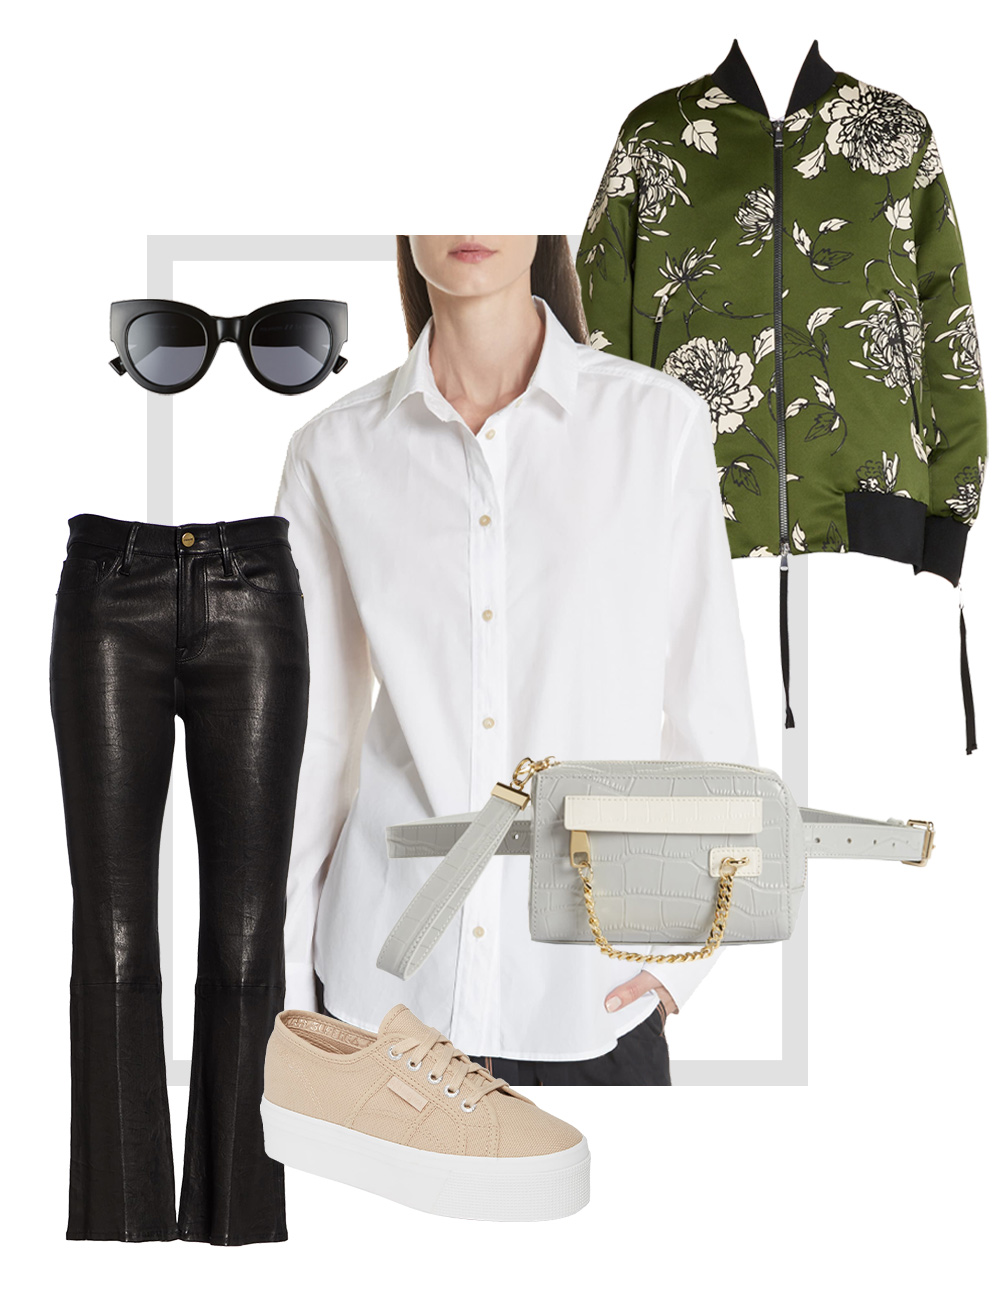 Women's leather pants and printed jacket outfit collage